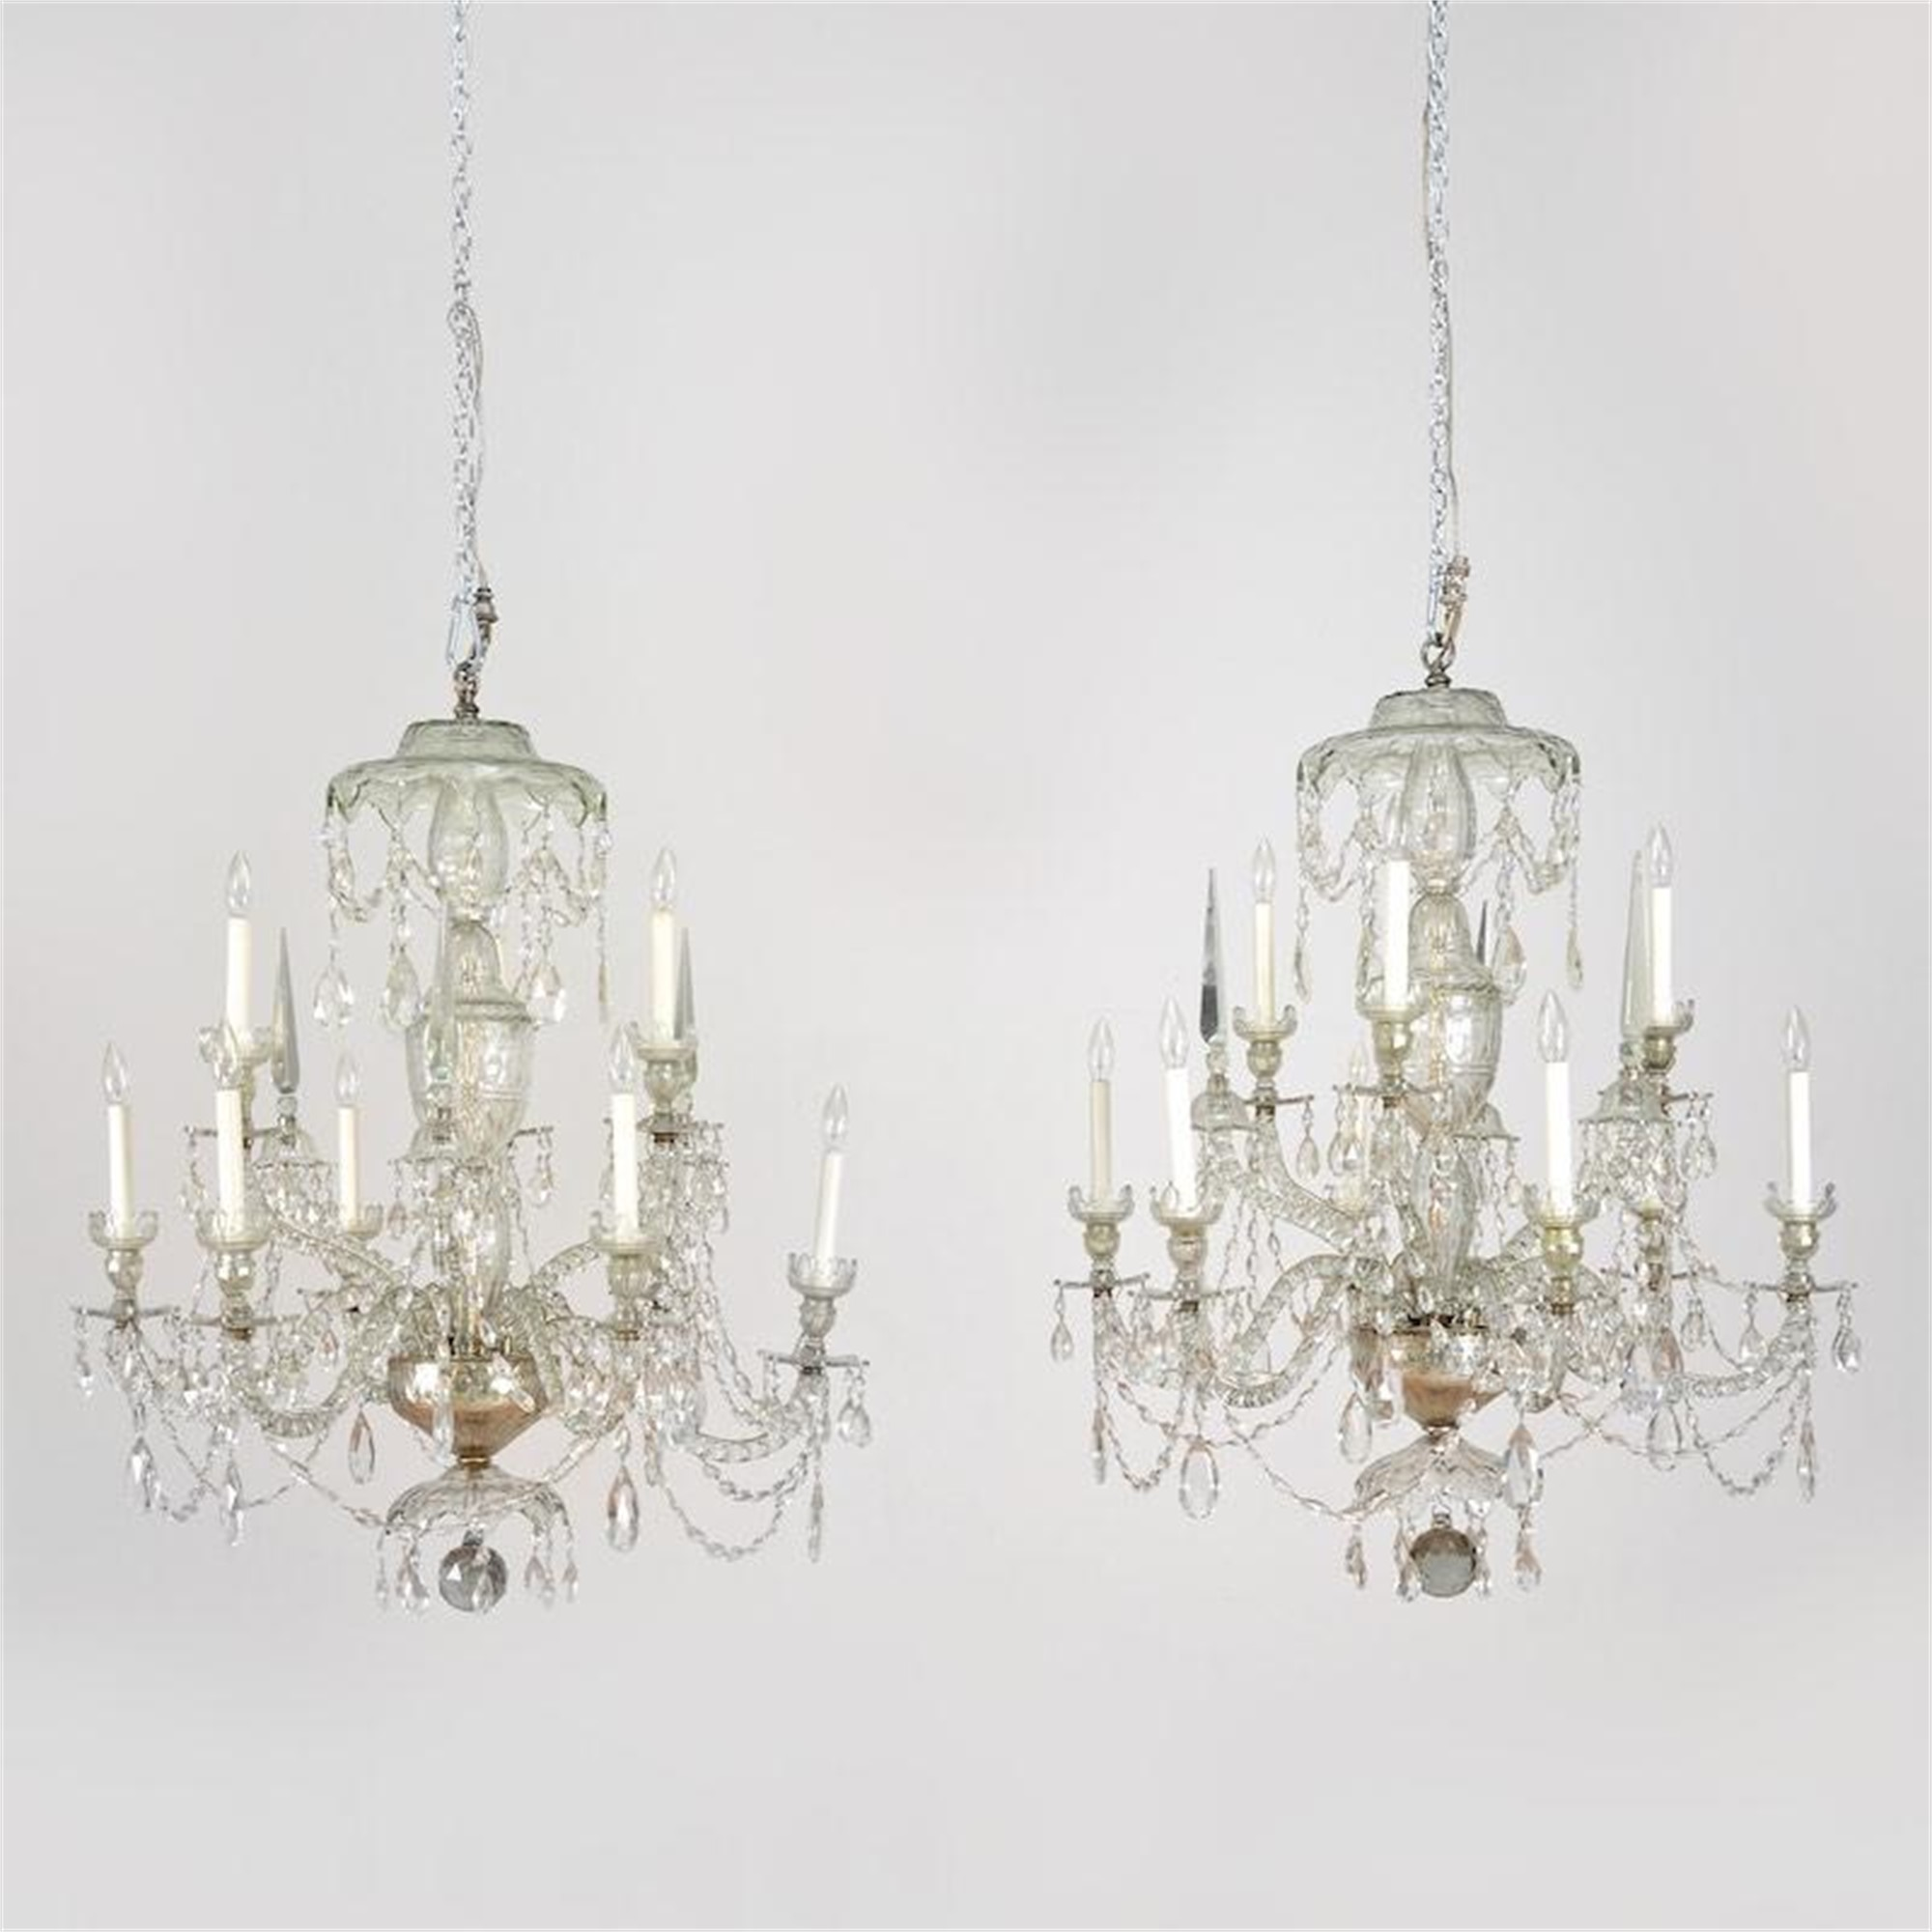 PAIR OF LATE GEORGIAN CUT GLASS CHANDELIERS